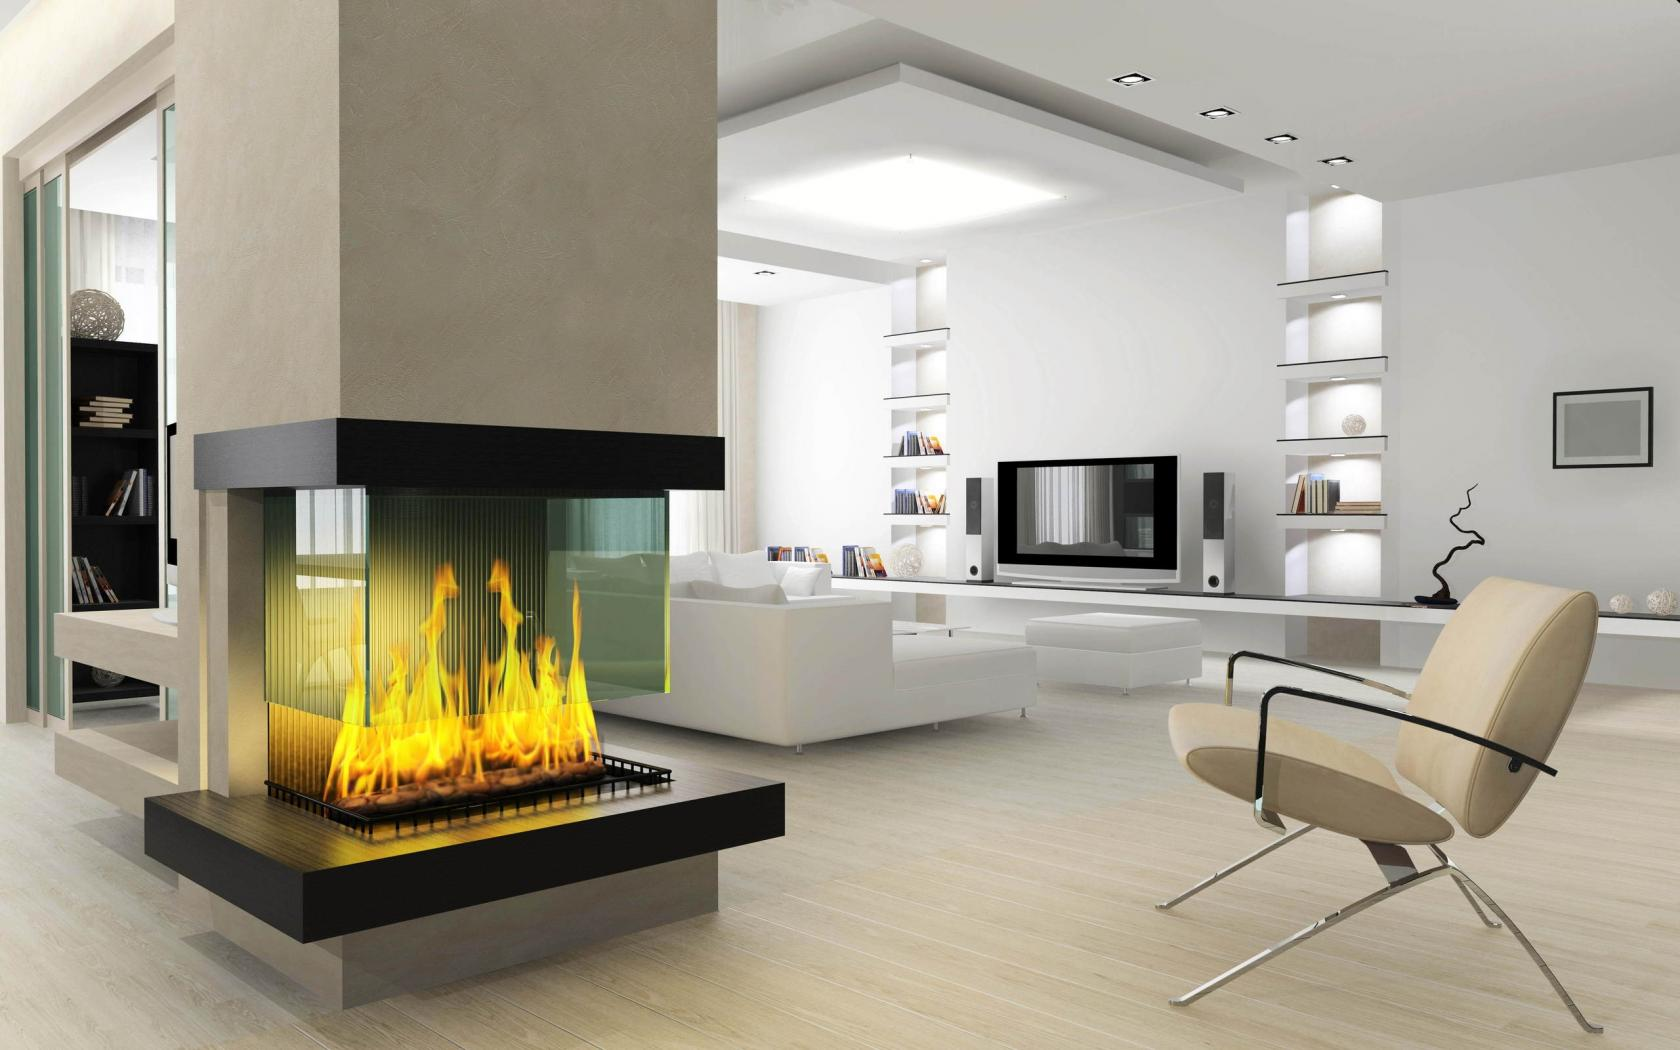 Beautify Your House With Creative Fireplace Designs | My Decorative